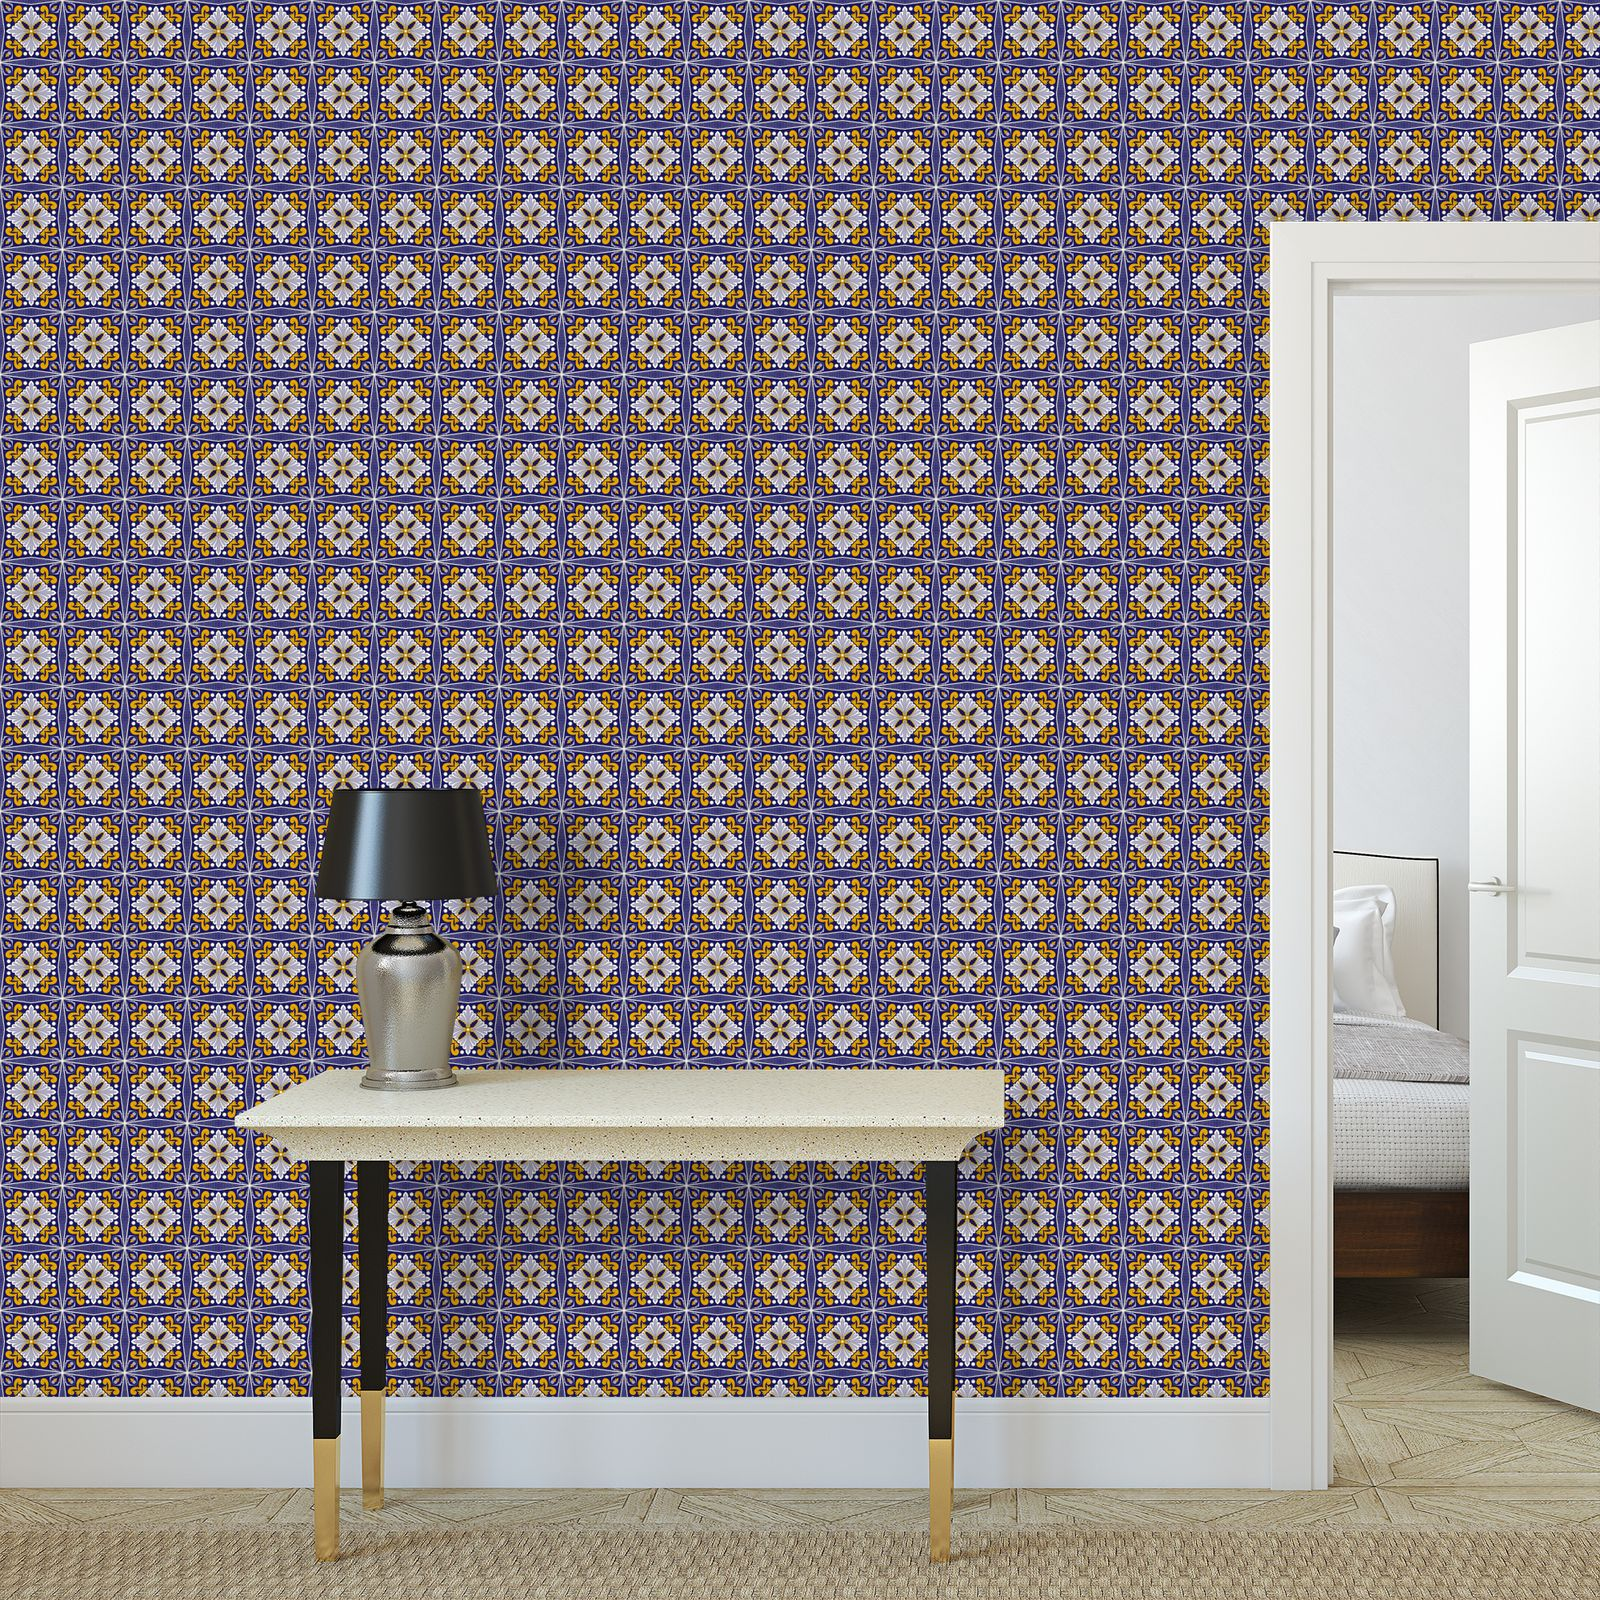 Moroccan Tile Repeat Pattern - #1